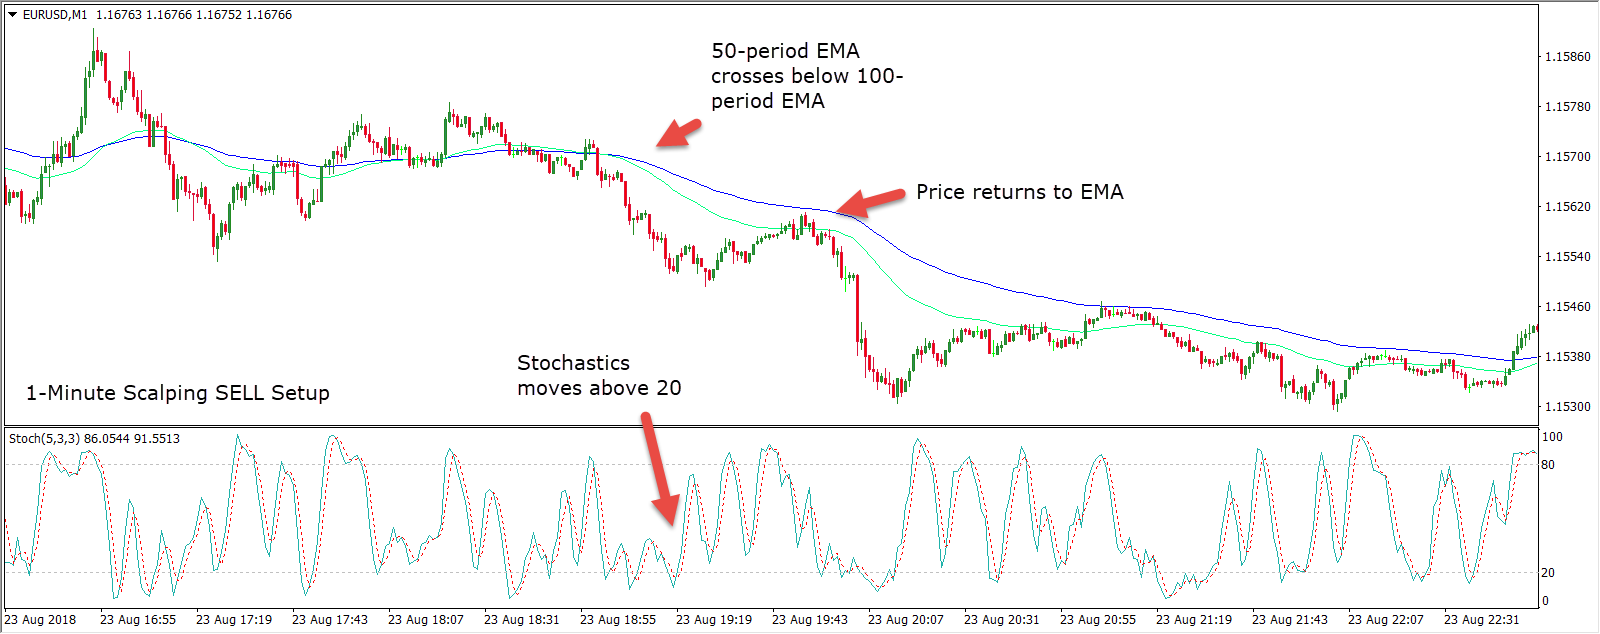 Advantages & Disadvantages of the 1-Minute Scalping Strategy